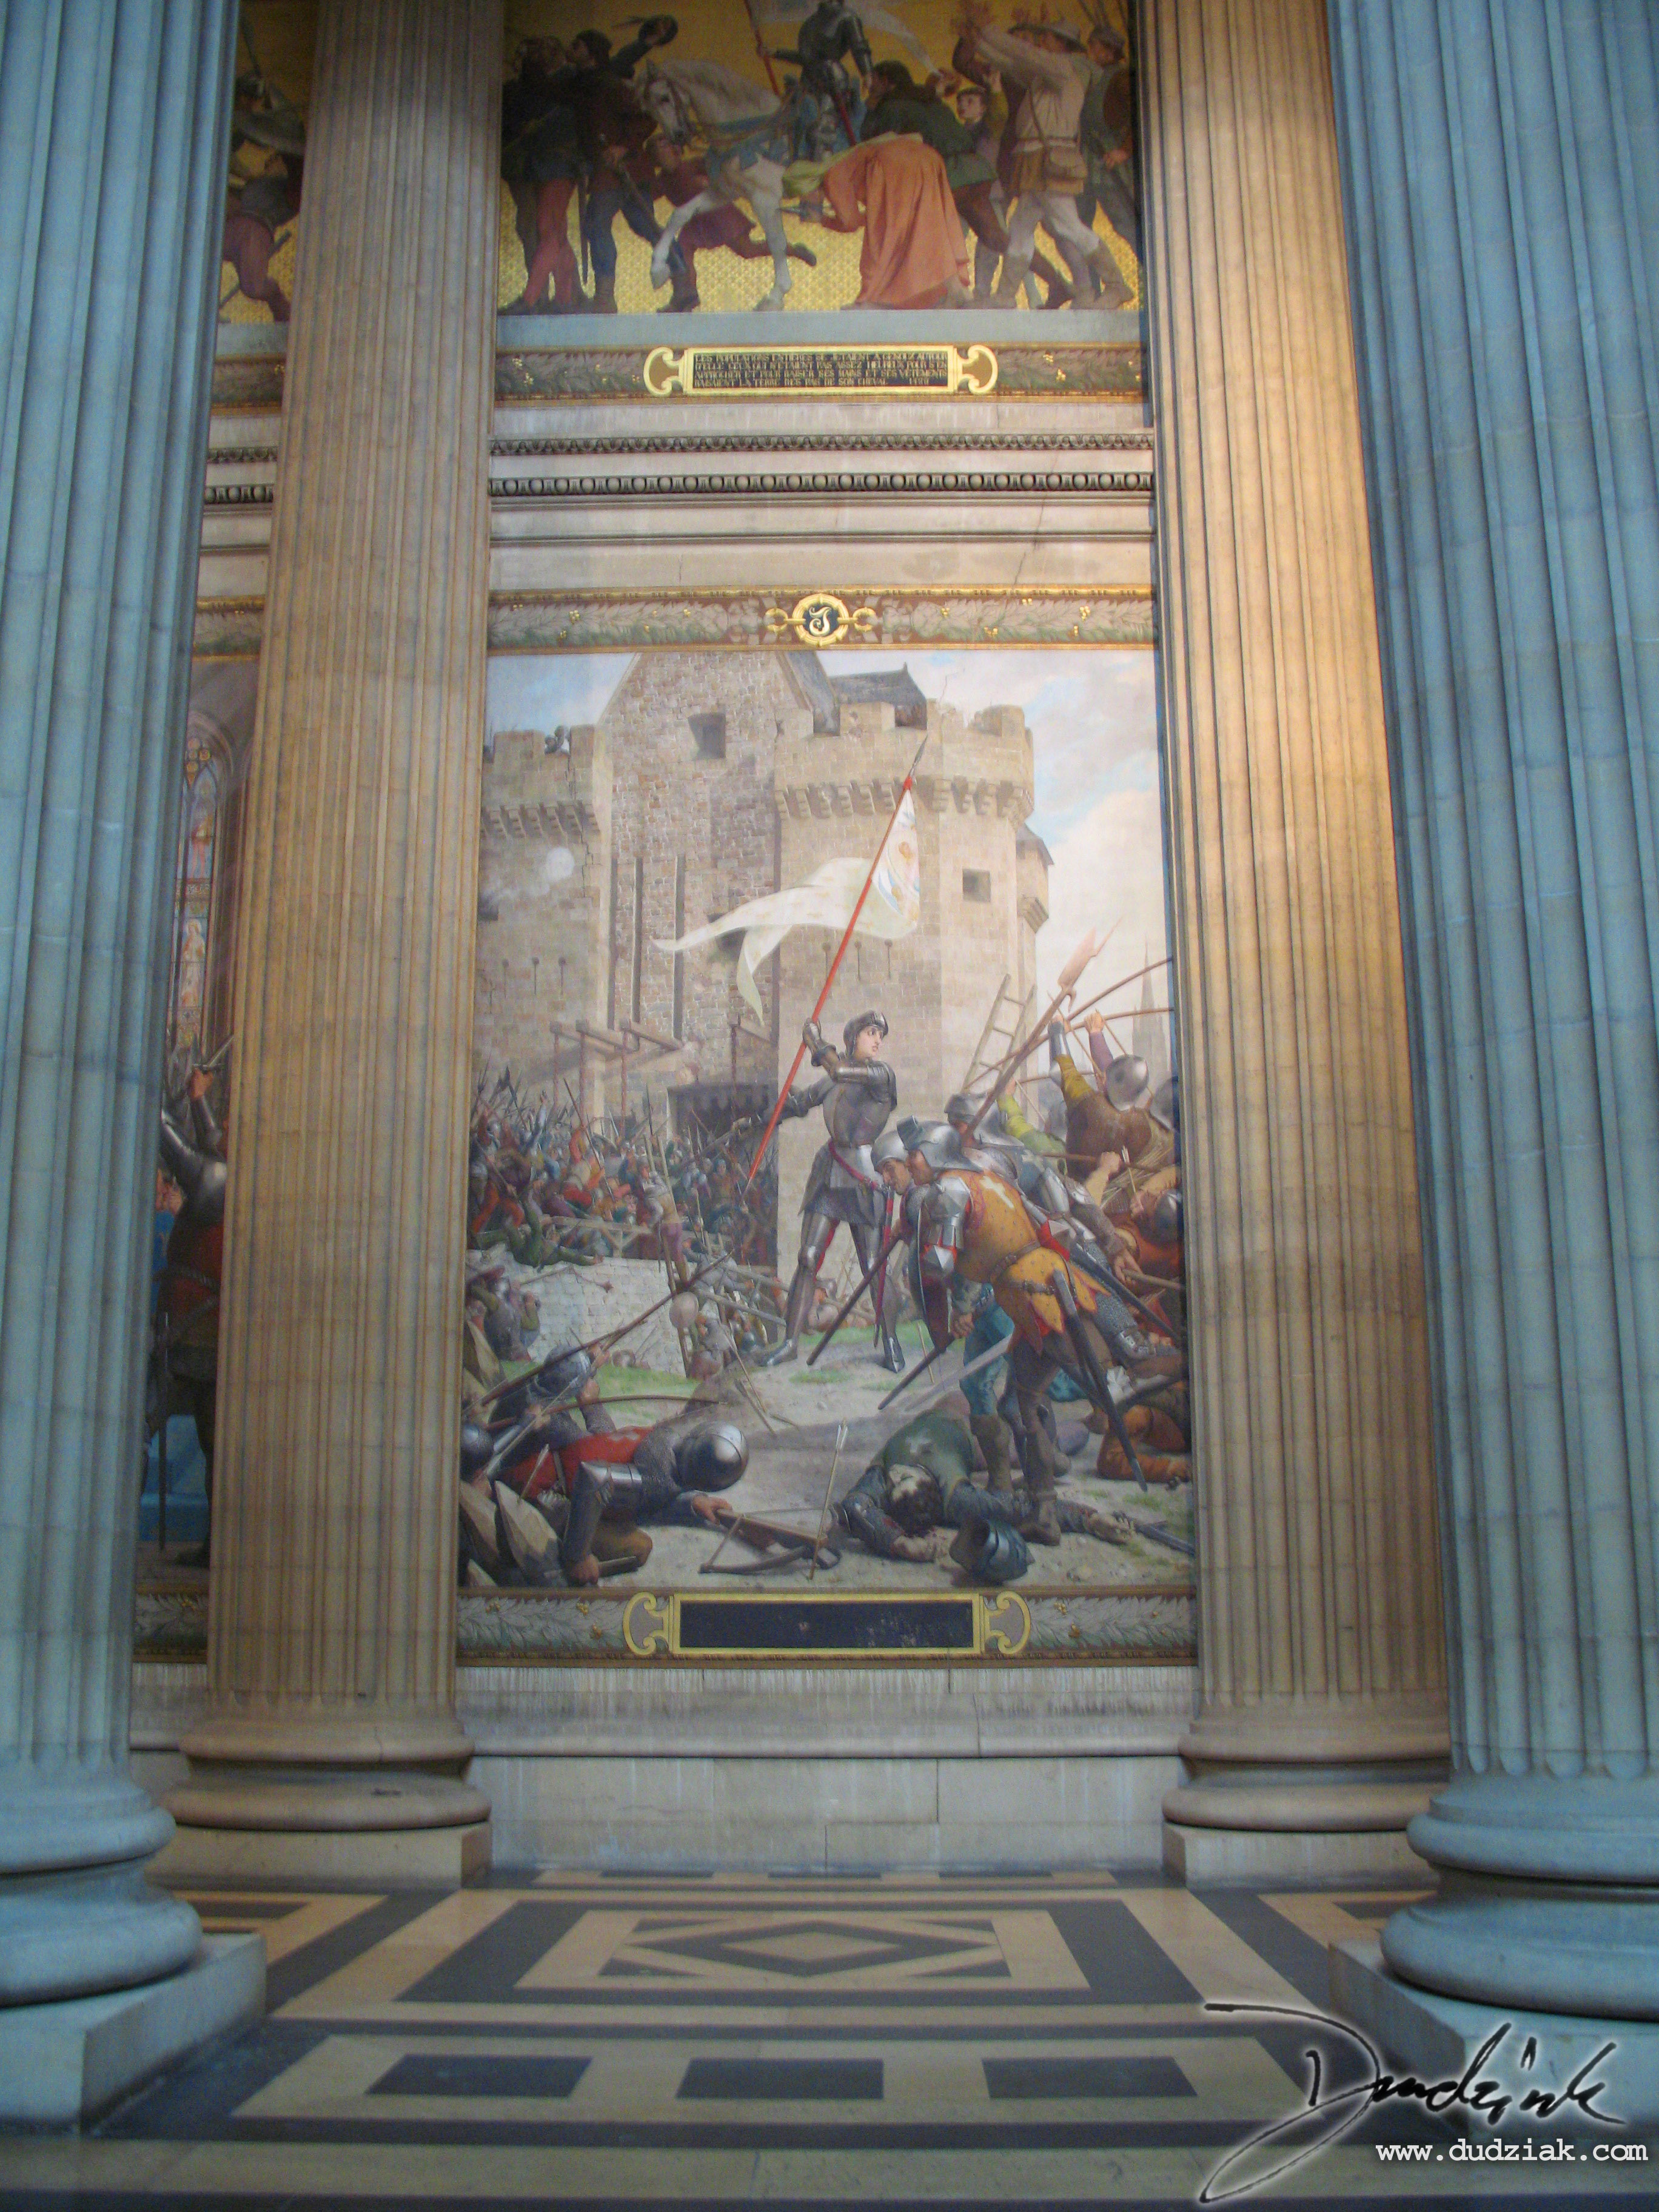 Picture of the second section of the Joan of Arc Mural within the Paris Pantheon.